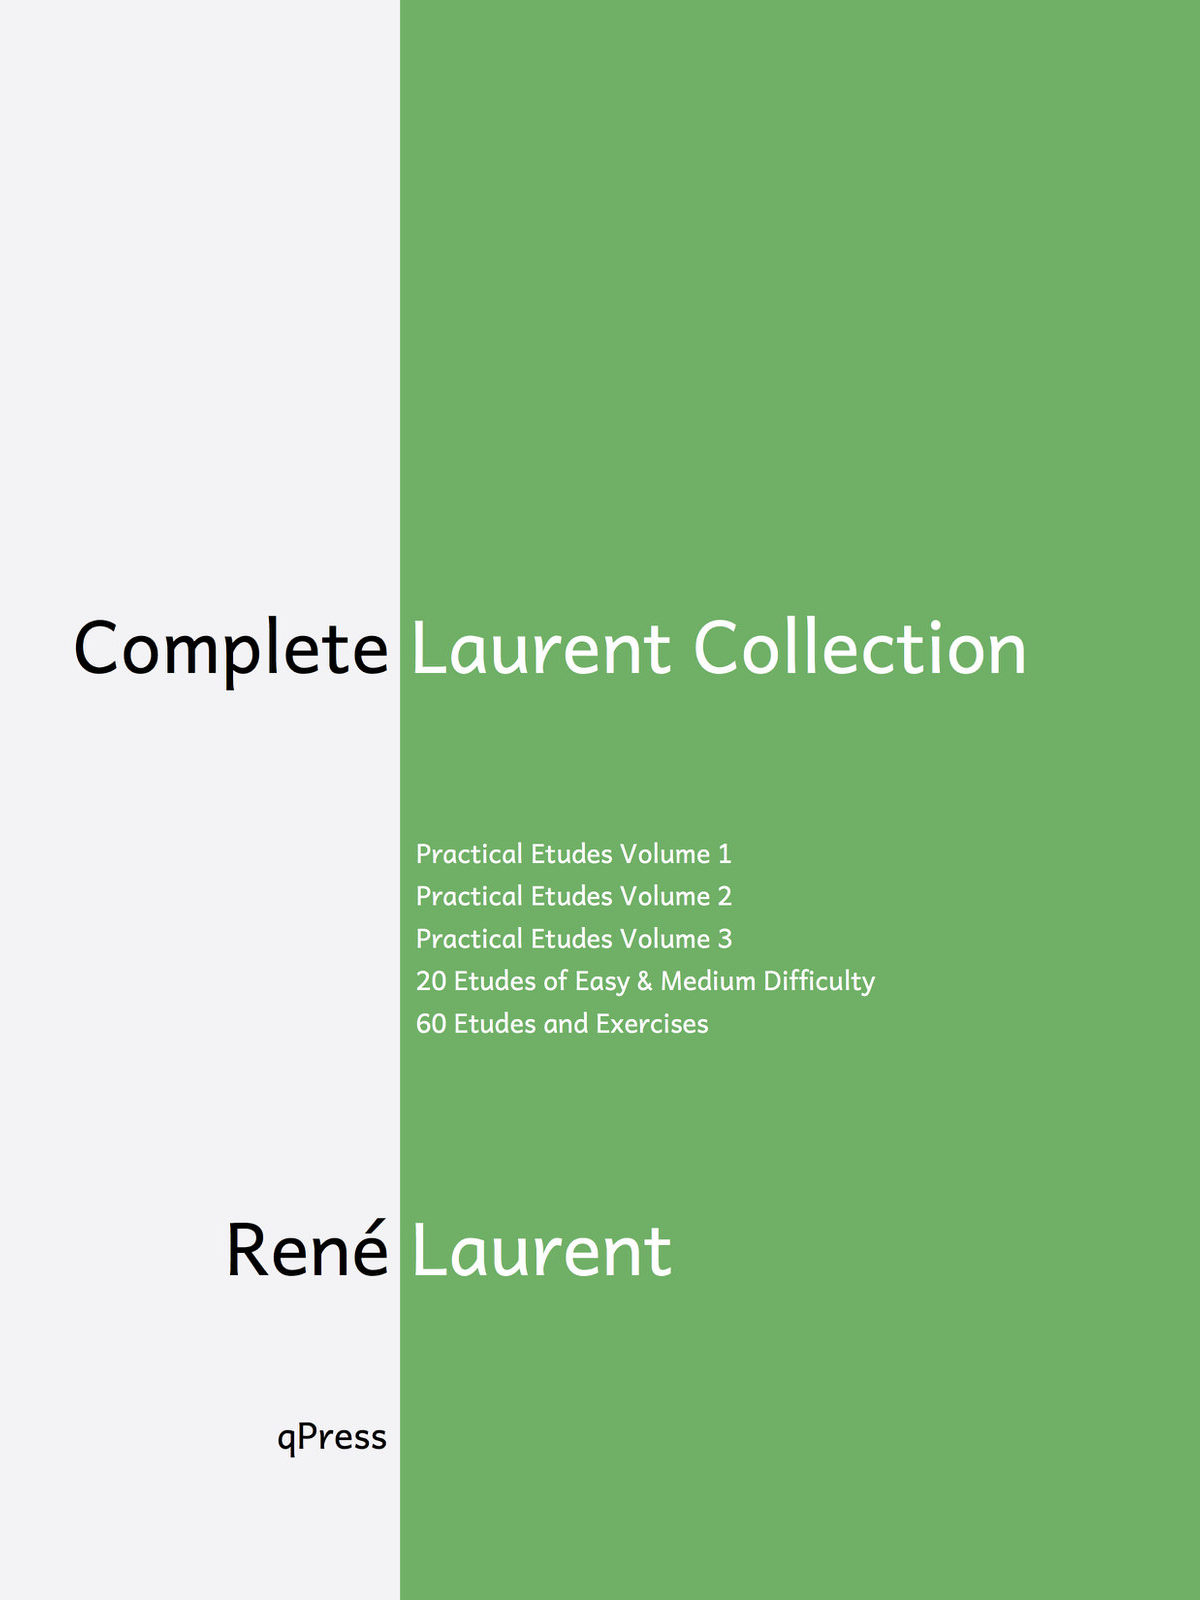 laurent-complete-collection